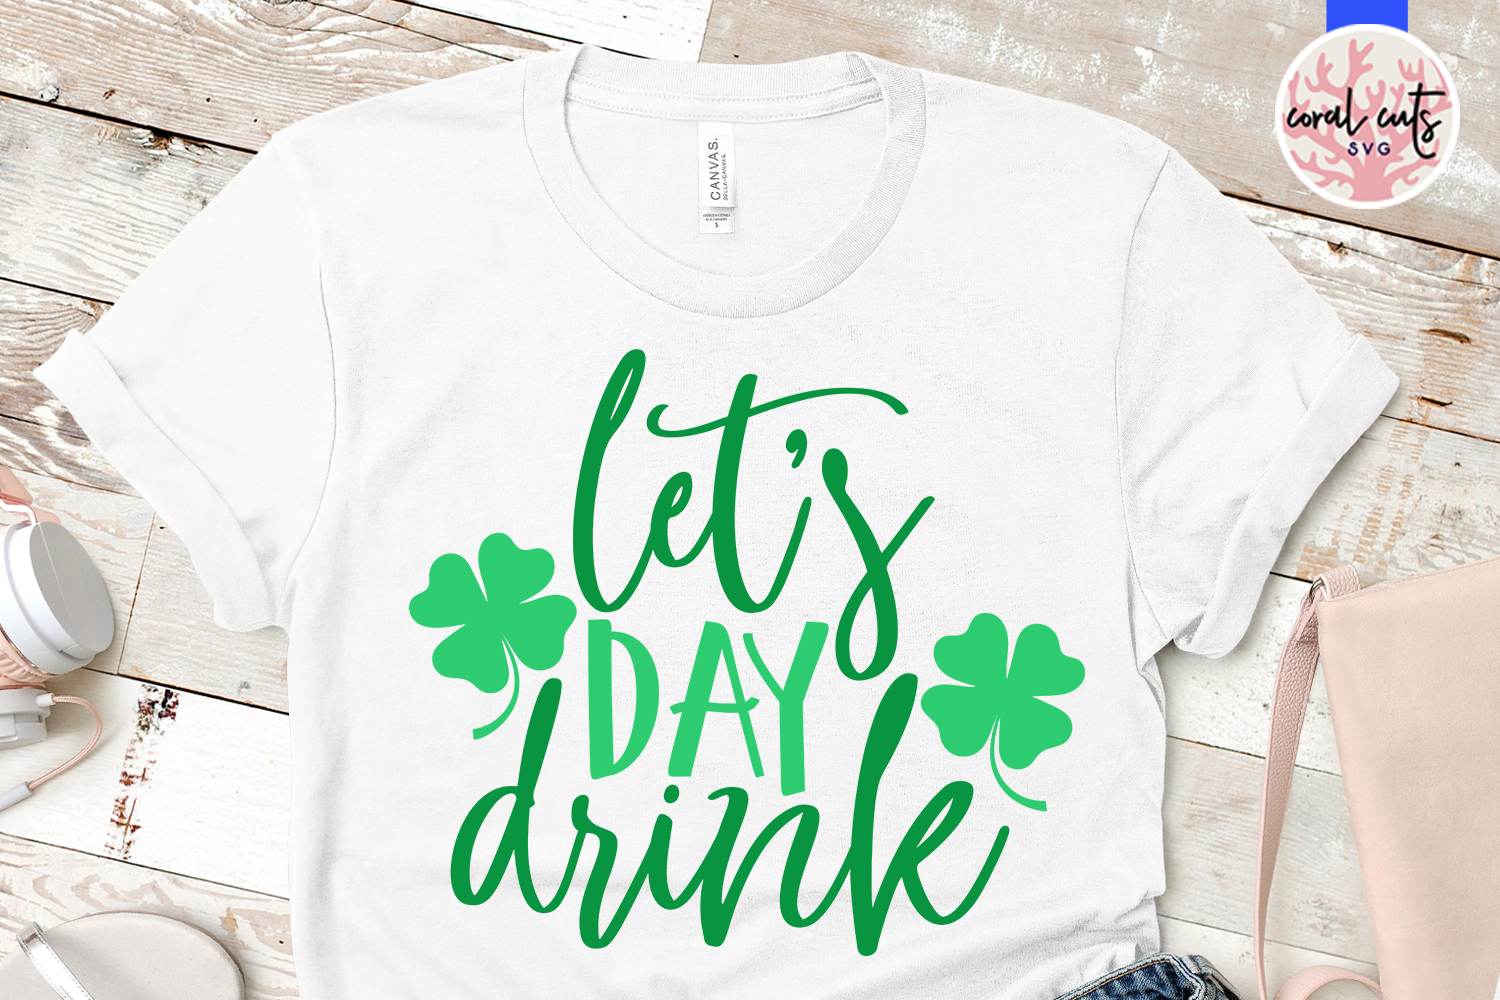 Let's day drink - St. Patrick's Day SVG EPS DXF PNG example image 2